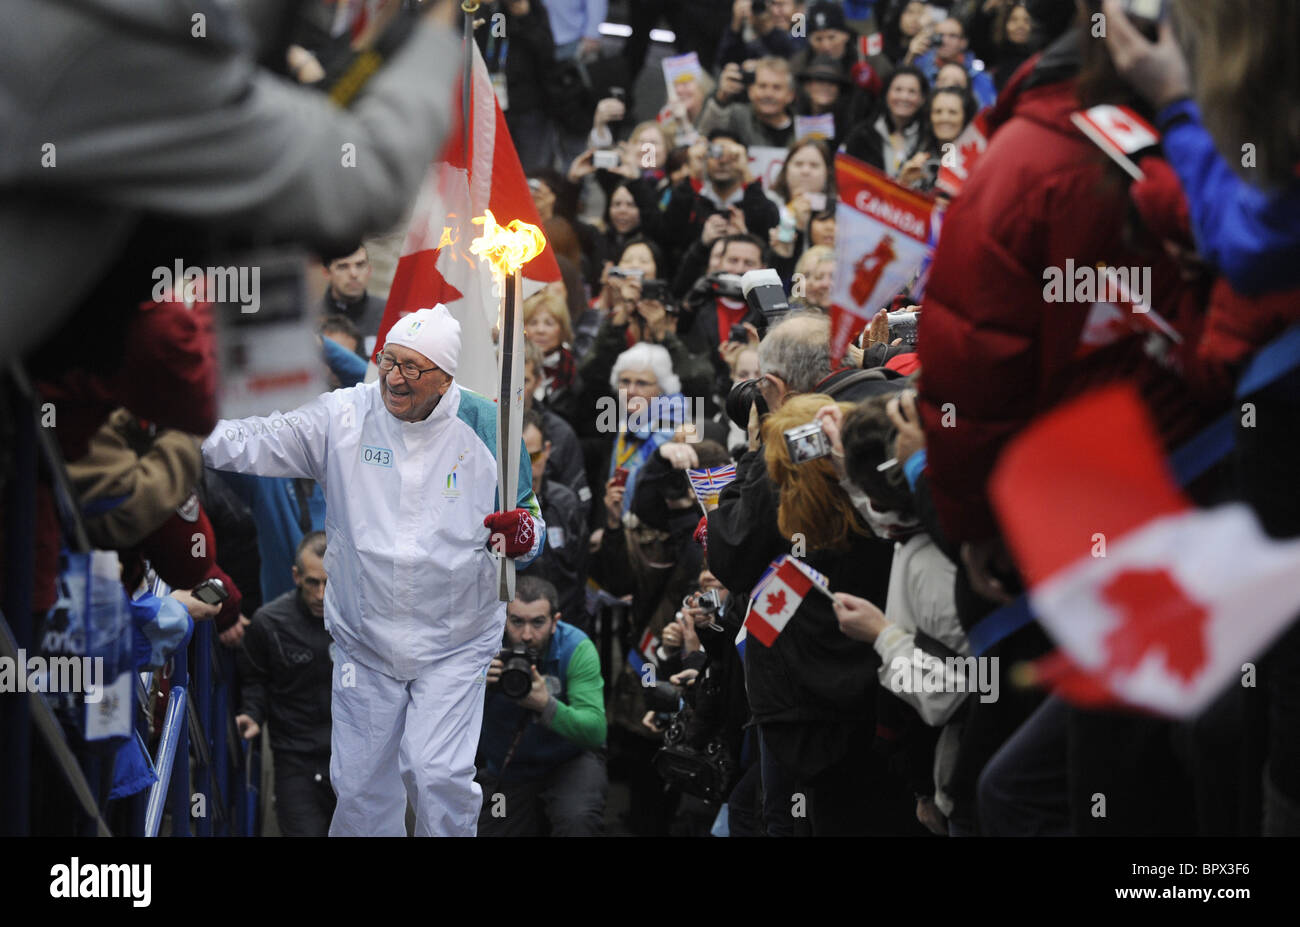 Olympic Torch Relay in Vancouver - Stock Image